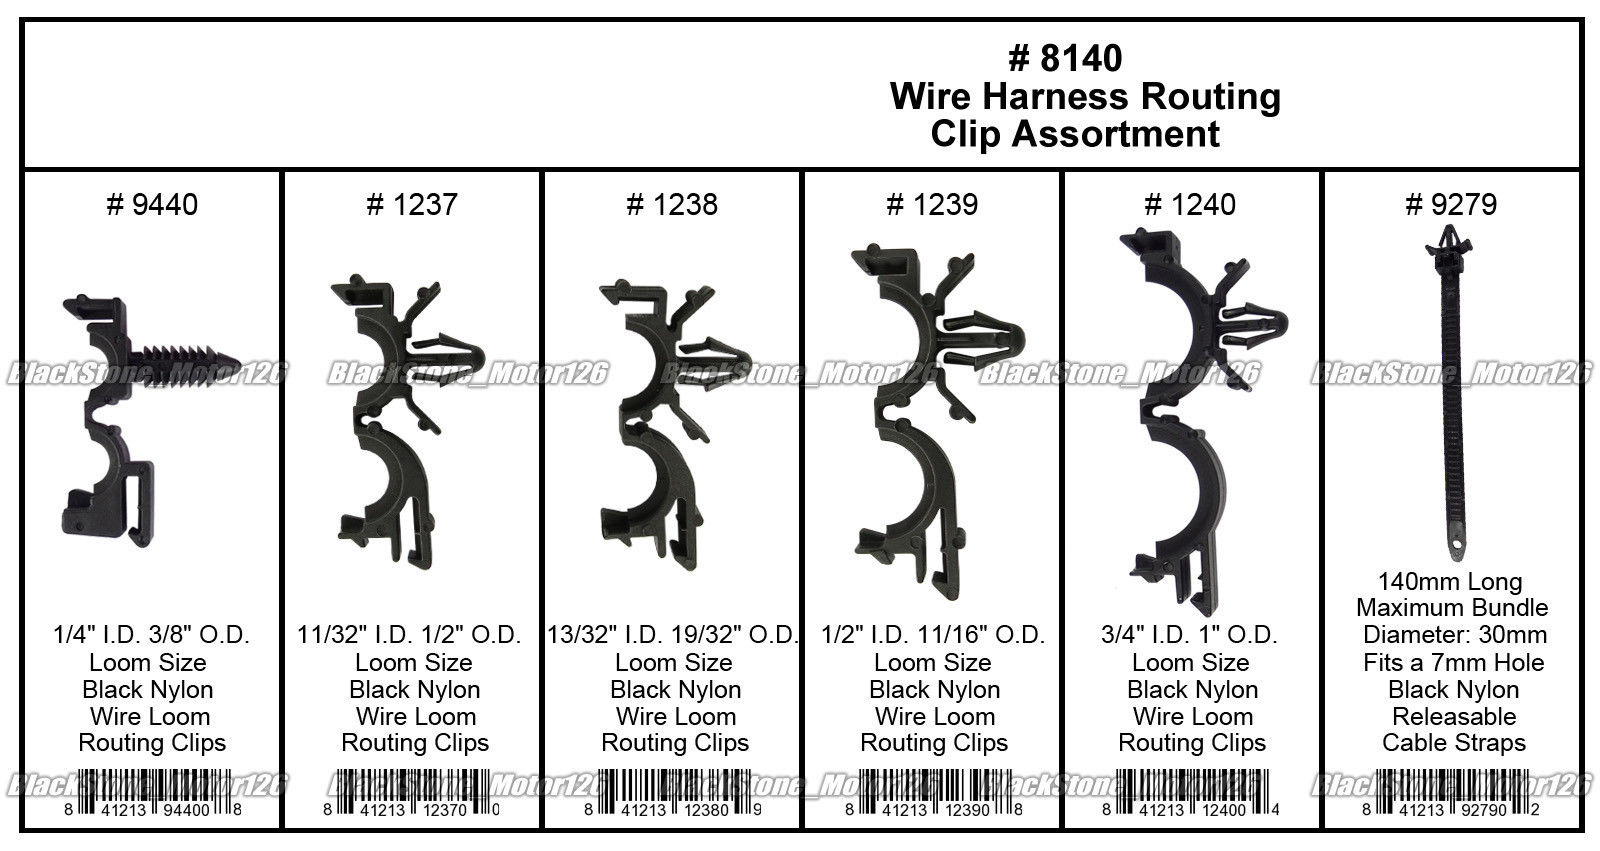 hight resolution of great 54 x wiring harness wire loom routing clips assortment convoluted conduit for gm 2018 2019